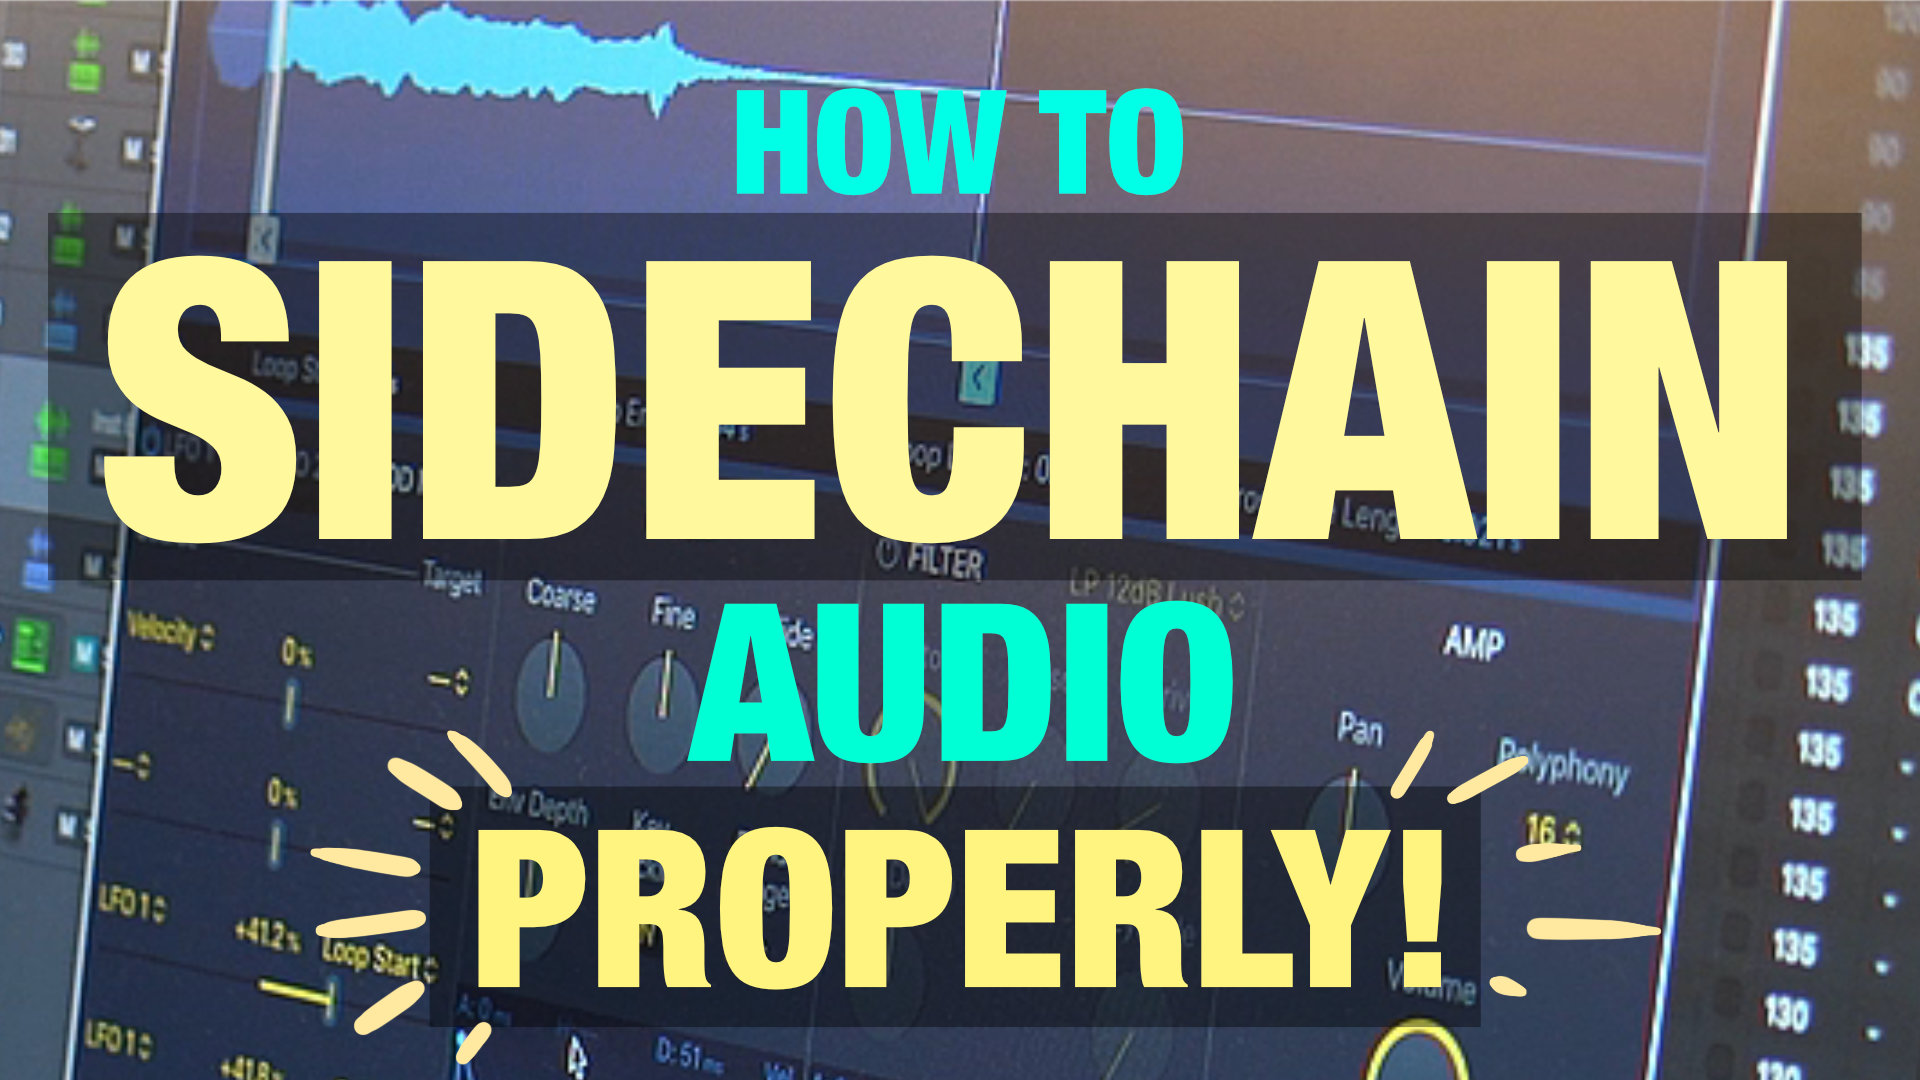 how-to-sidechain-audio-properly_01